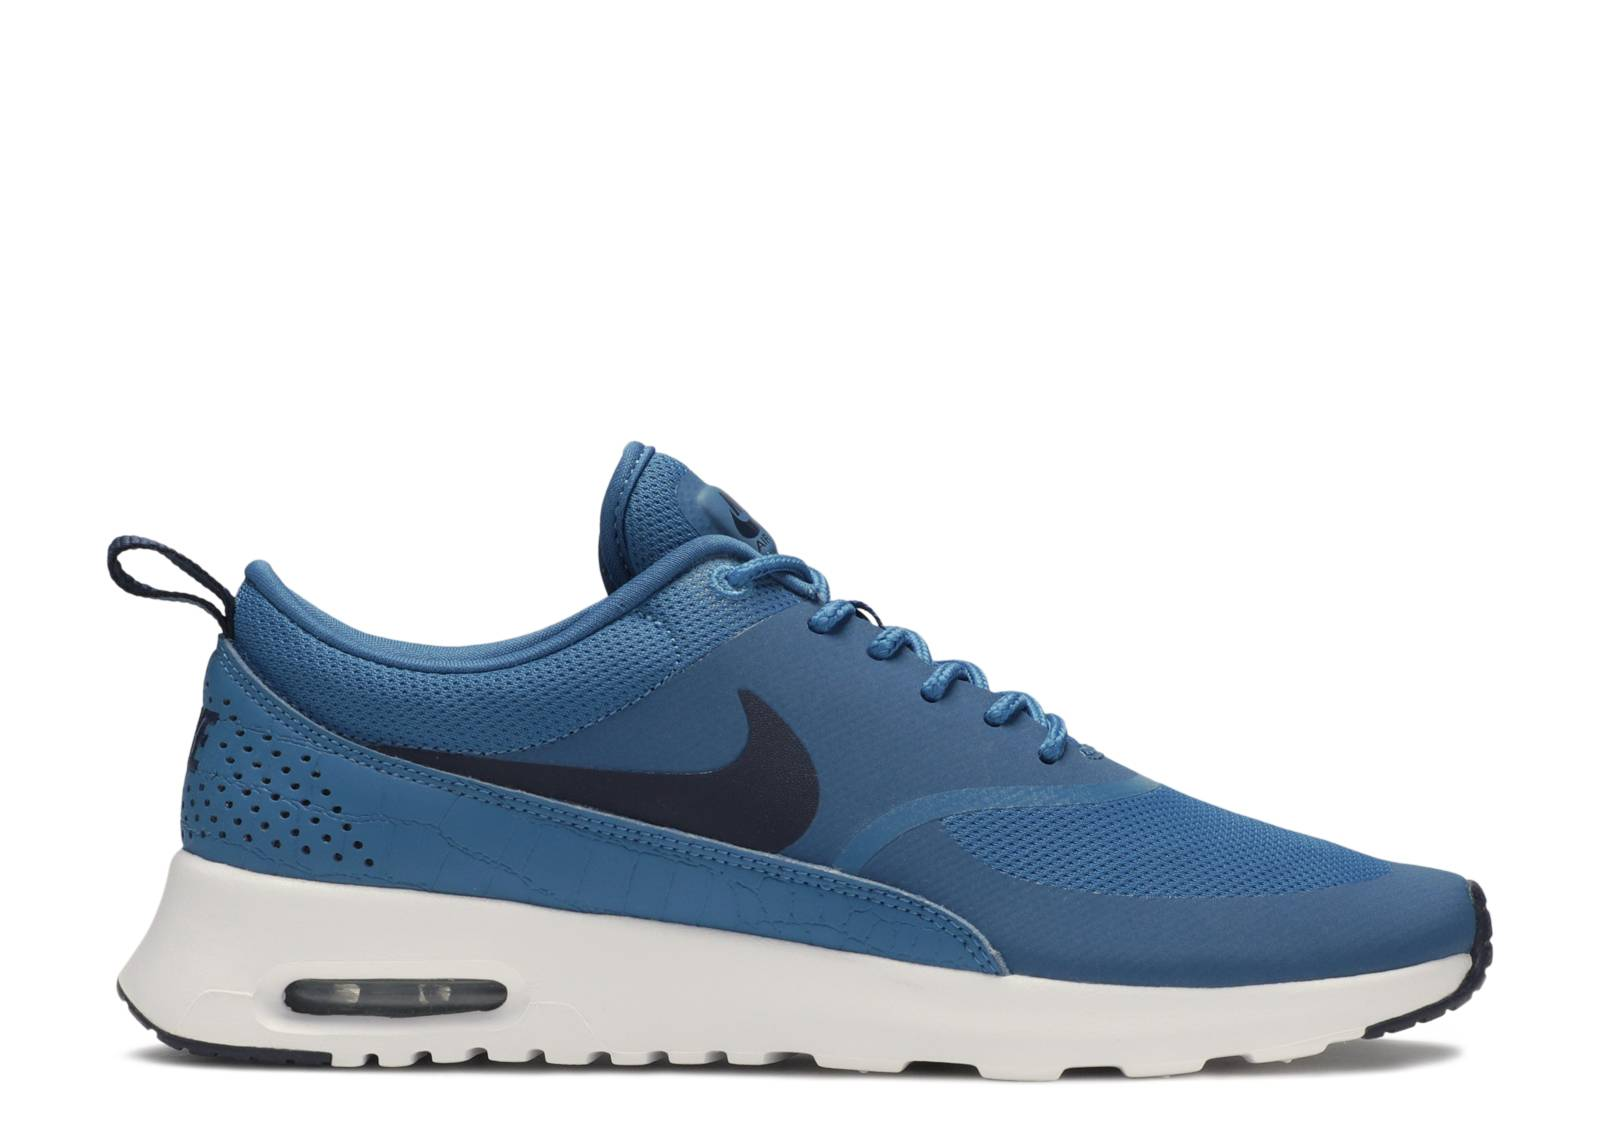 NEW 599409 415 Women's NIKE AIR MAX THEA Shoe!! INDUSTRIAL